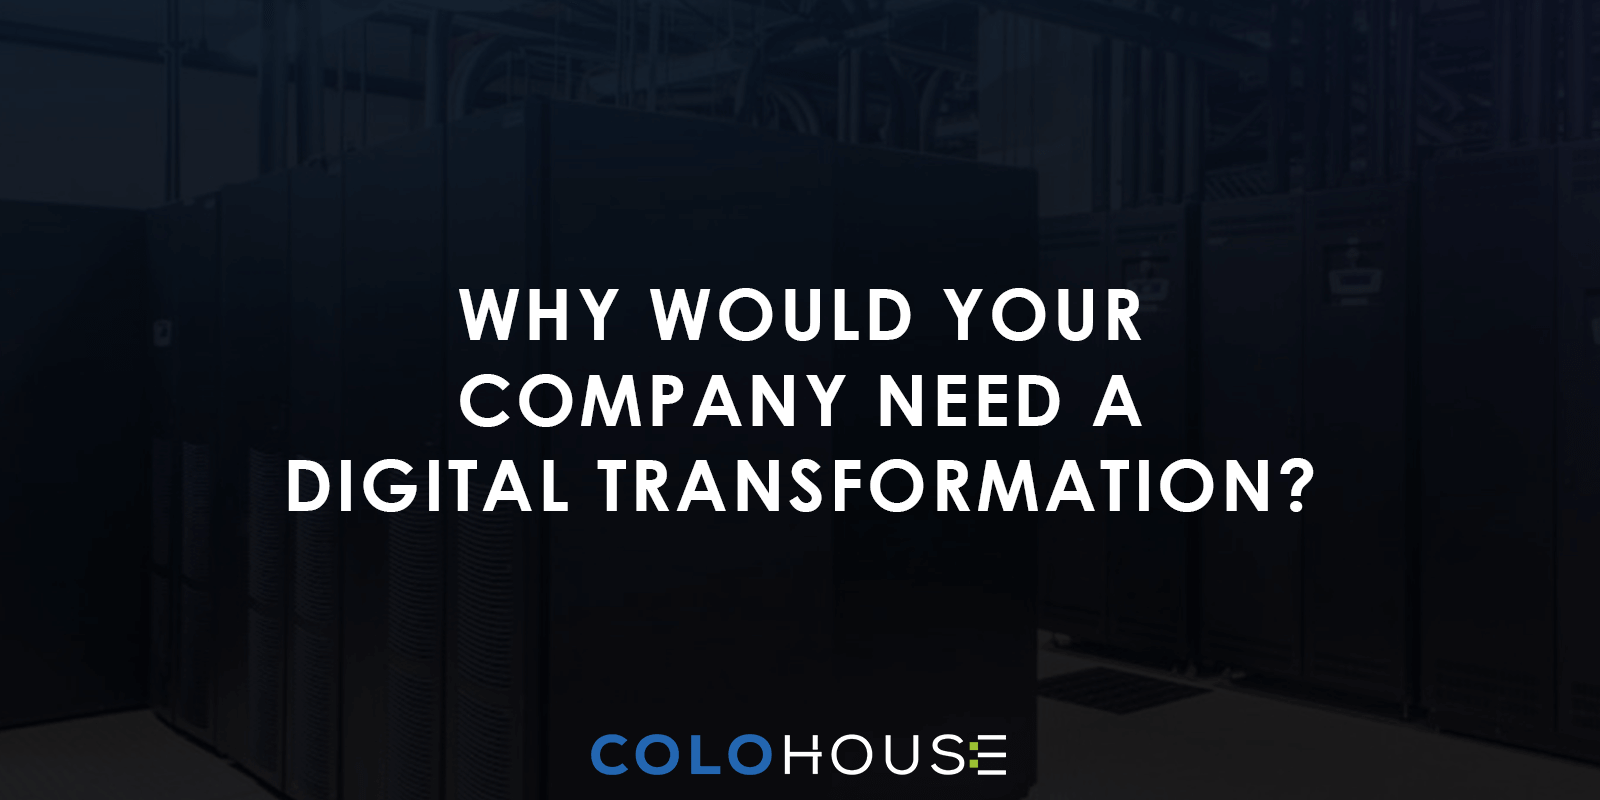 Why Would Your Company Need A Digital Transformation?